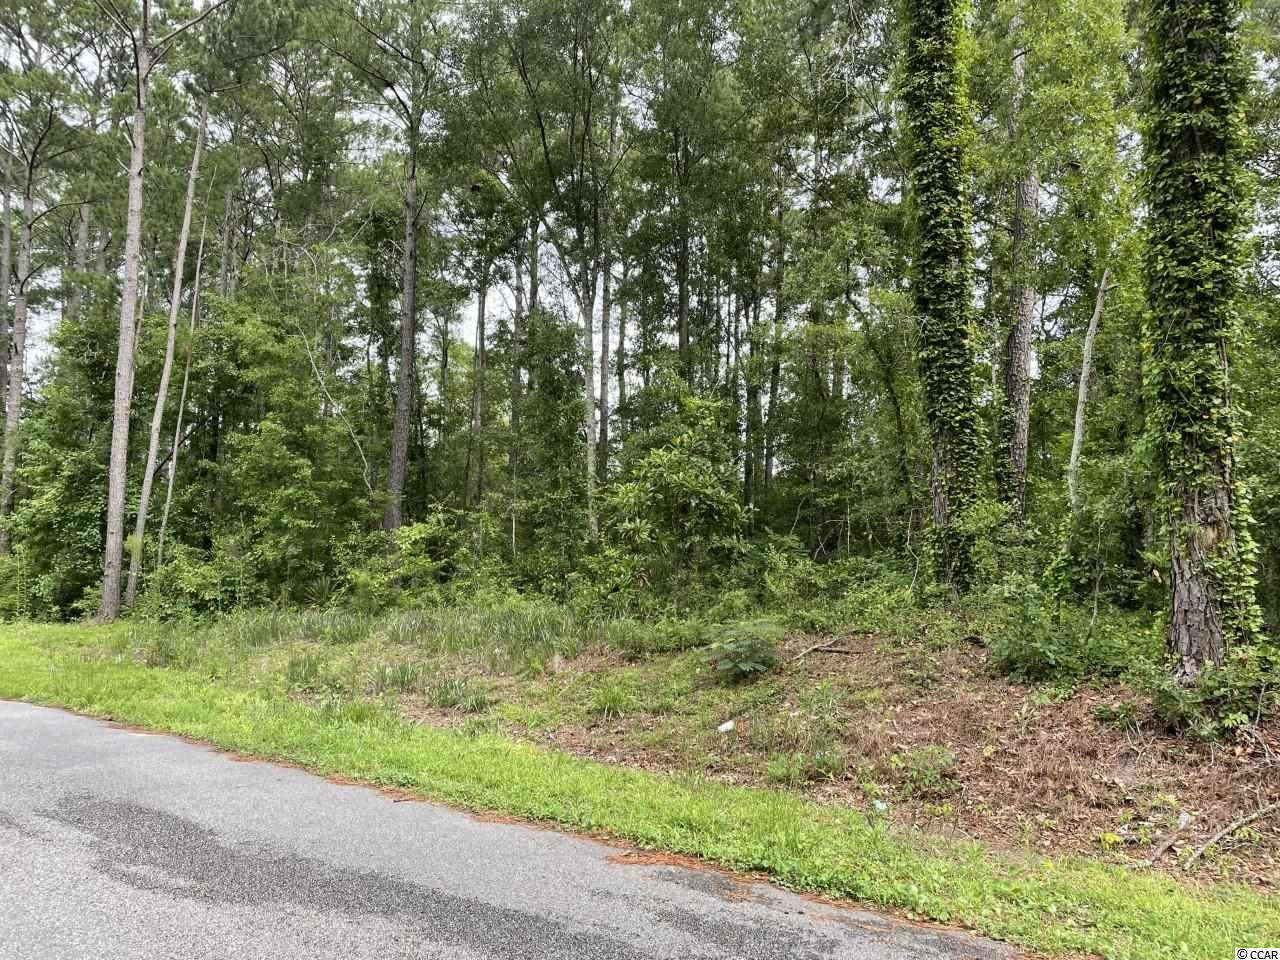 A outstanding opportunity to build your dream home on this wooded, 3/4 acre plus lot on a quiet street.  Just minutes from the beach, schools and all the fun North Myrtle Beach has to offer.